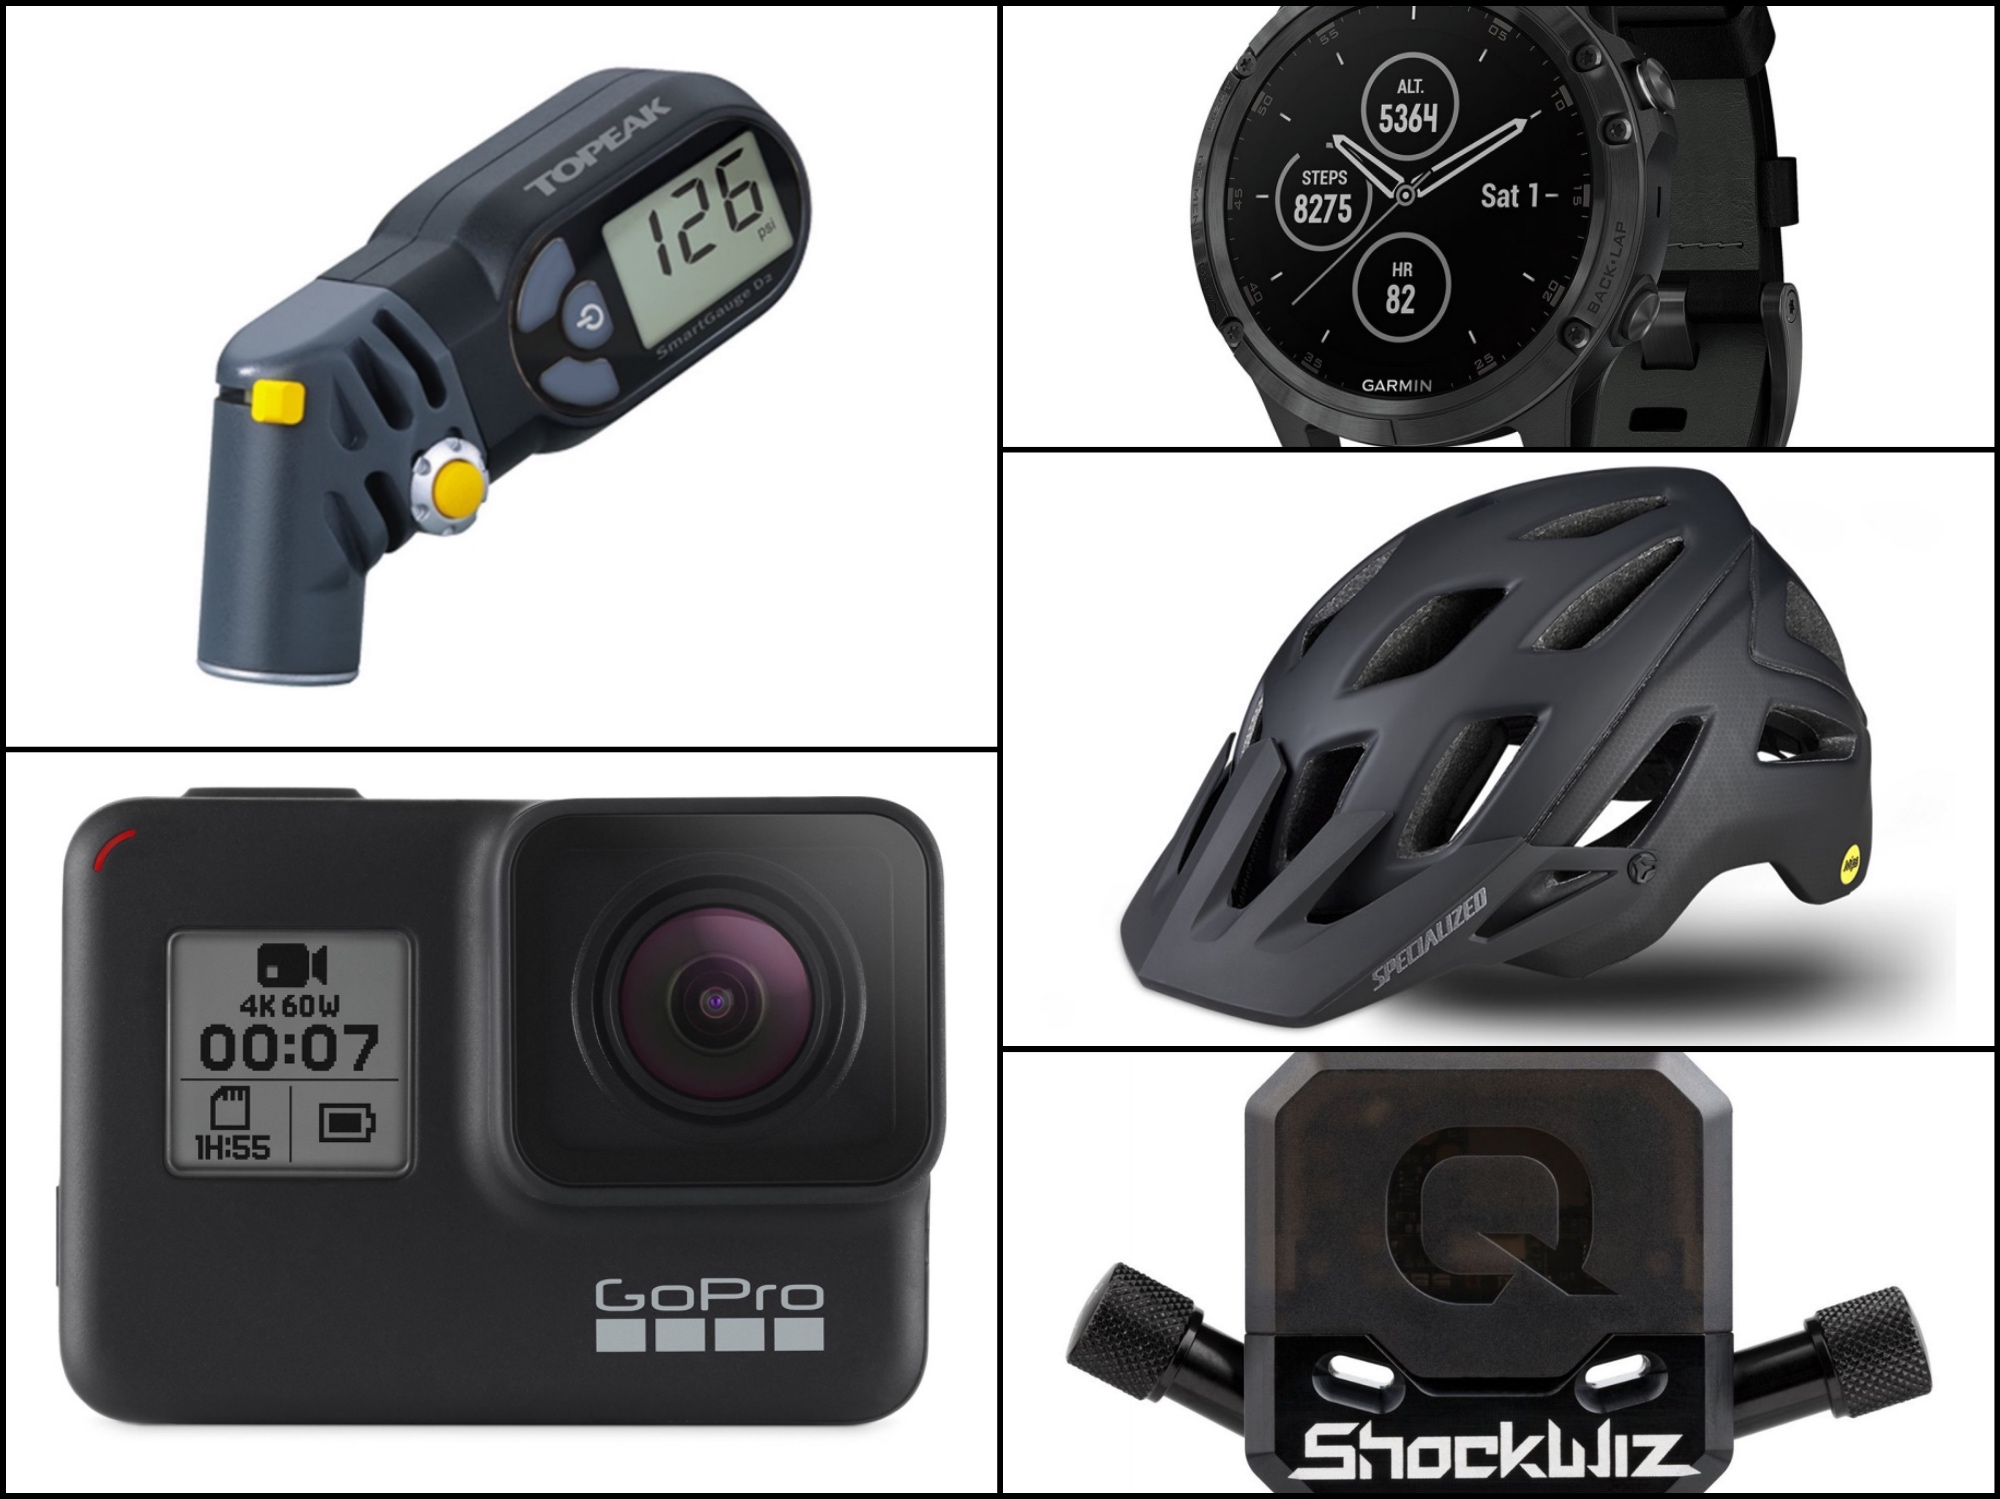 Gifts for gadget loving mountain bikers